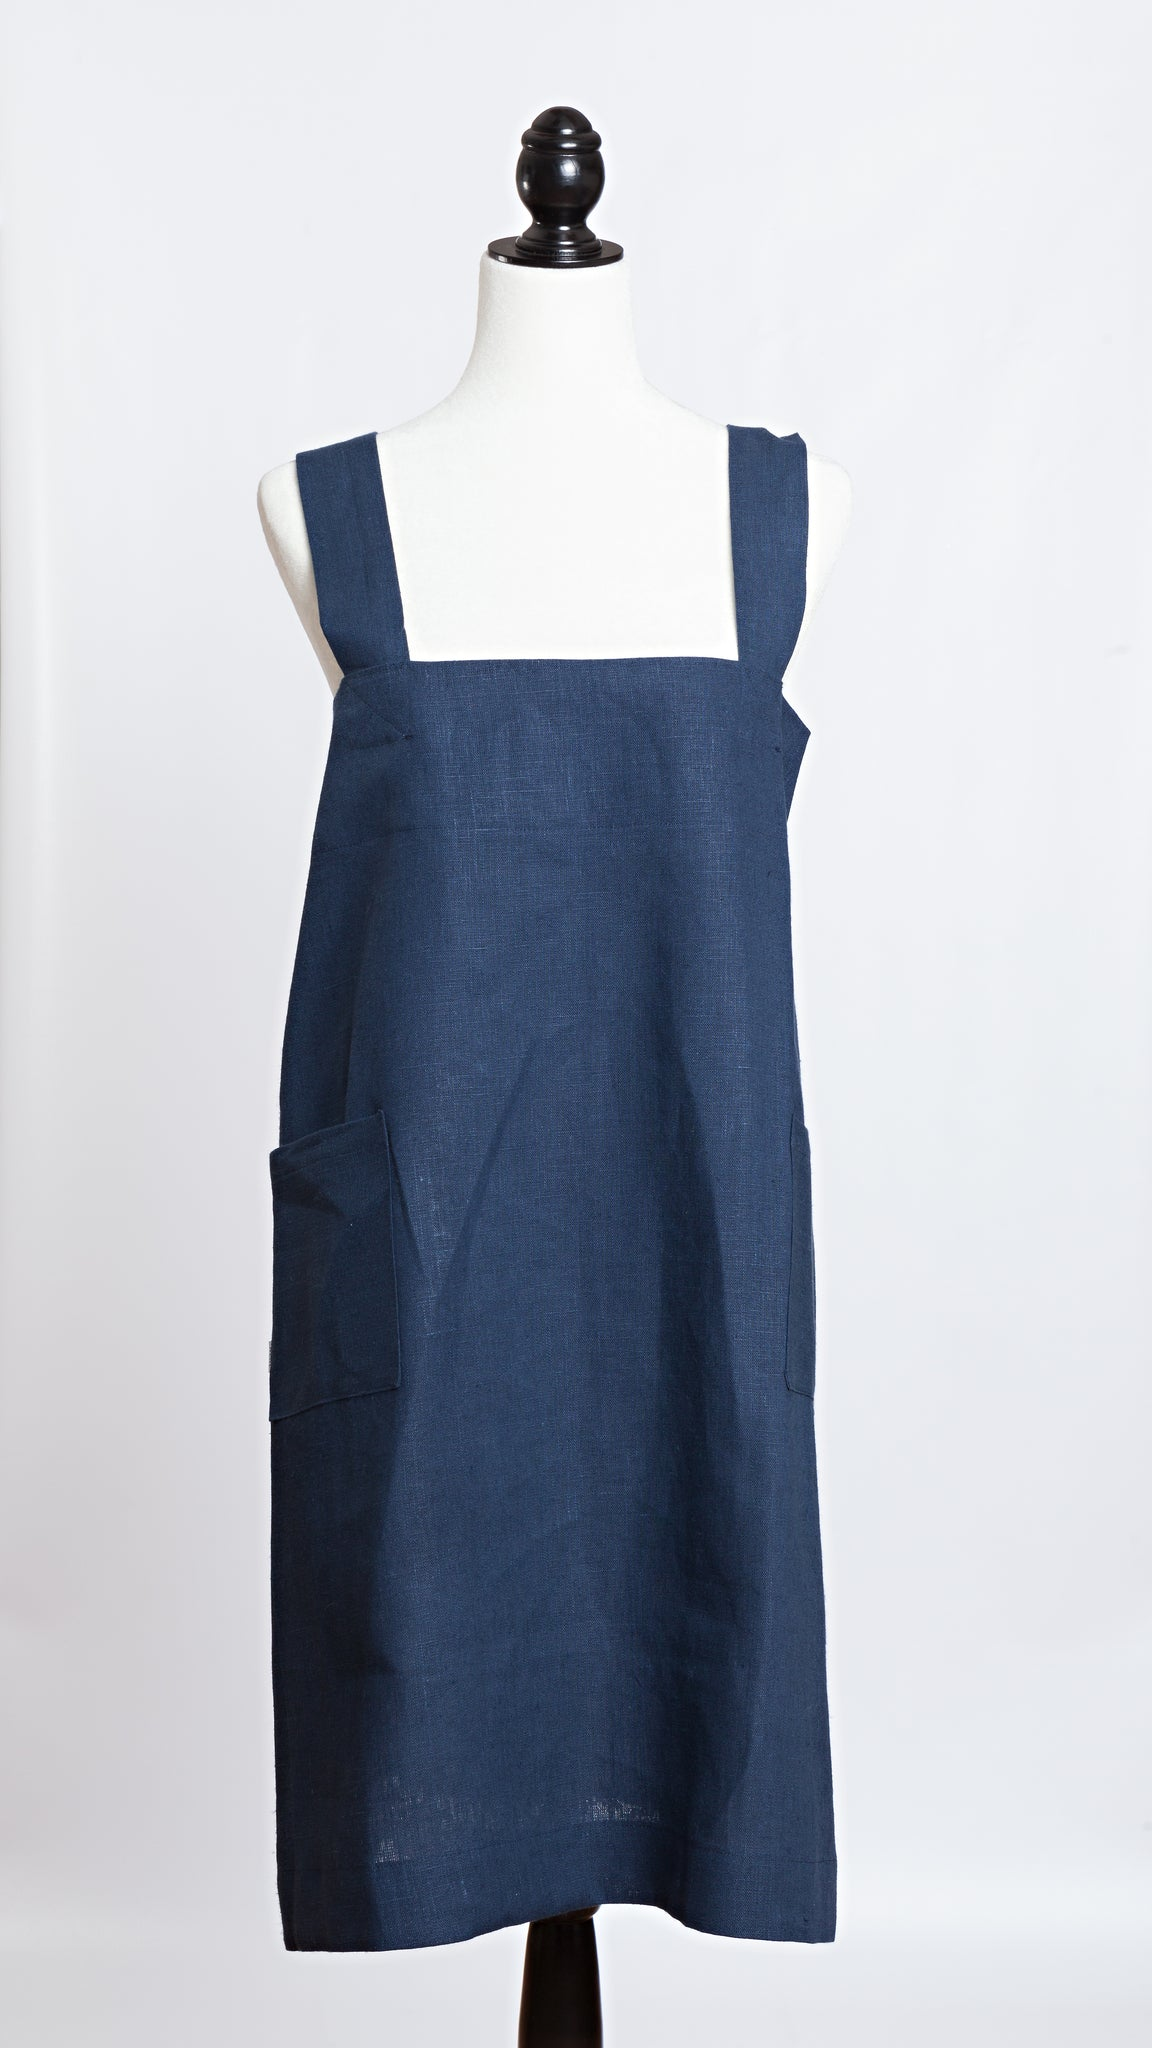 Molly Morris Designs Navy Apron